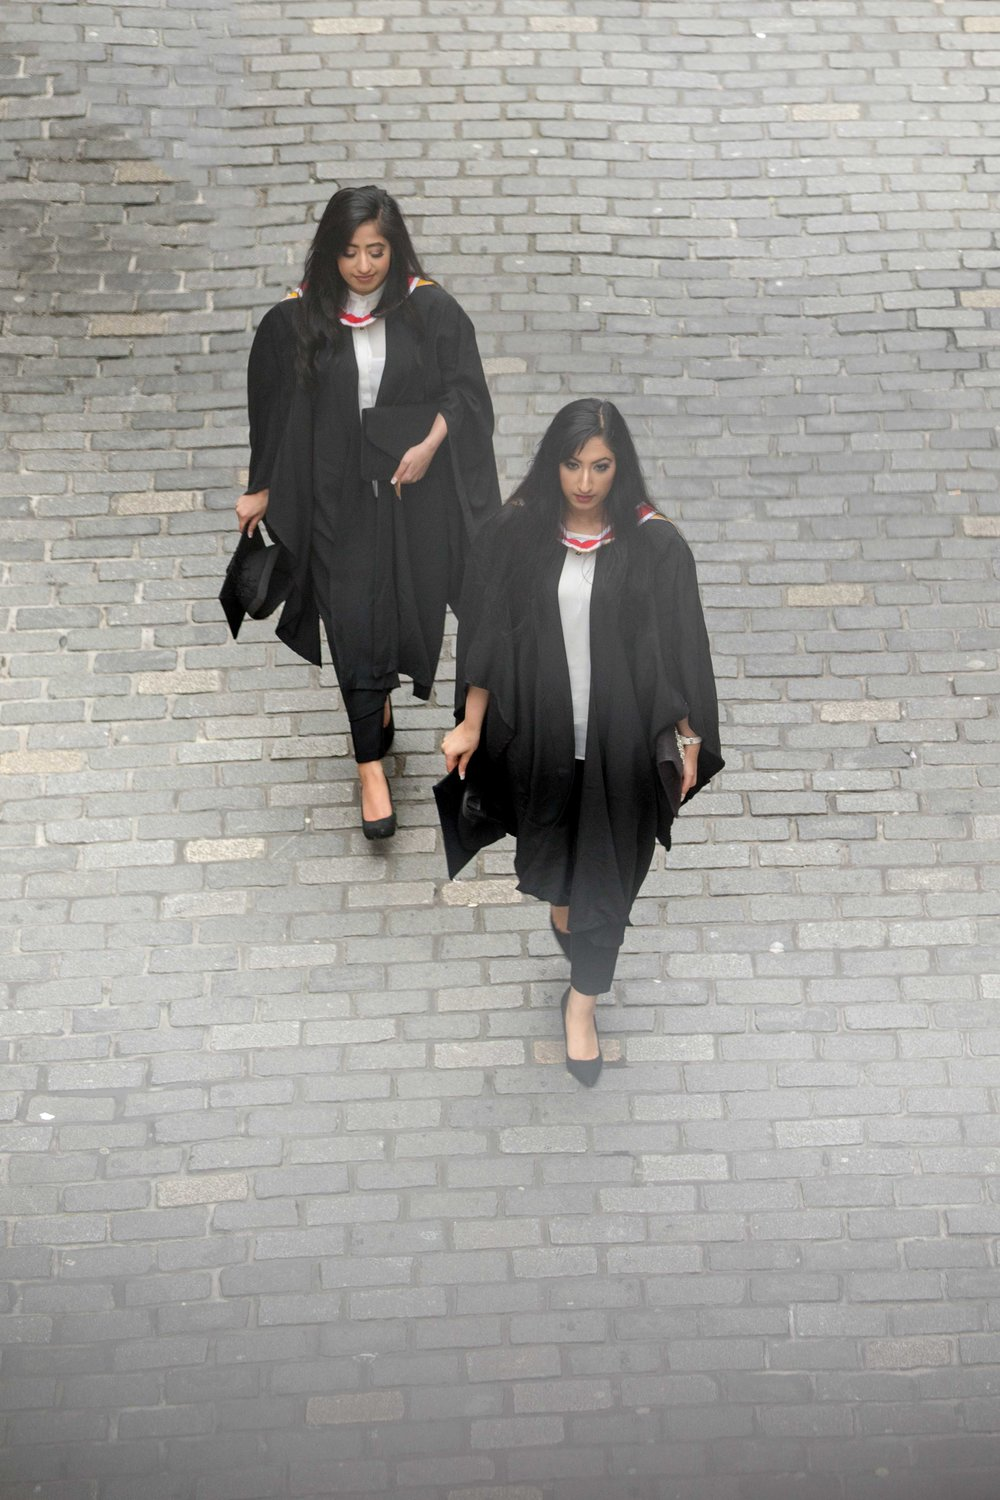 chester-university-graduation-ceremony-photography-photoshoot-graduation-photographer-Bristol-London-Cardiff-Birmingham-Chester-Natalia-smith-photography-8.jpg